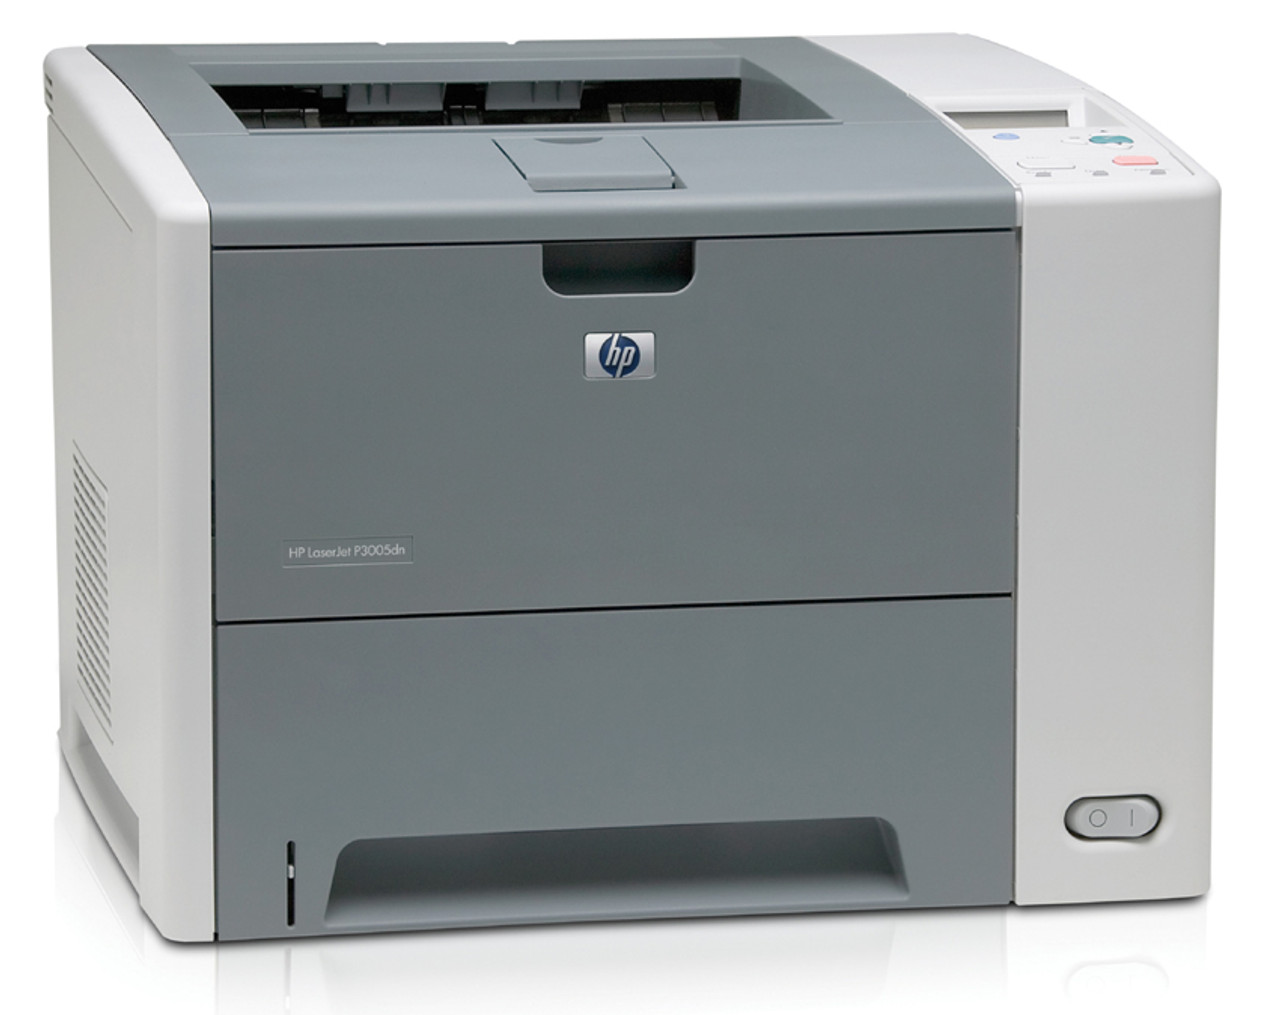 HP LaserJet P3005dn - Q7815AR - HP Laser Printer for sale